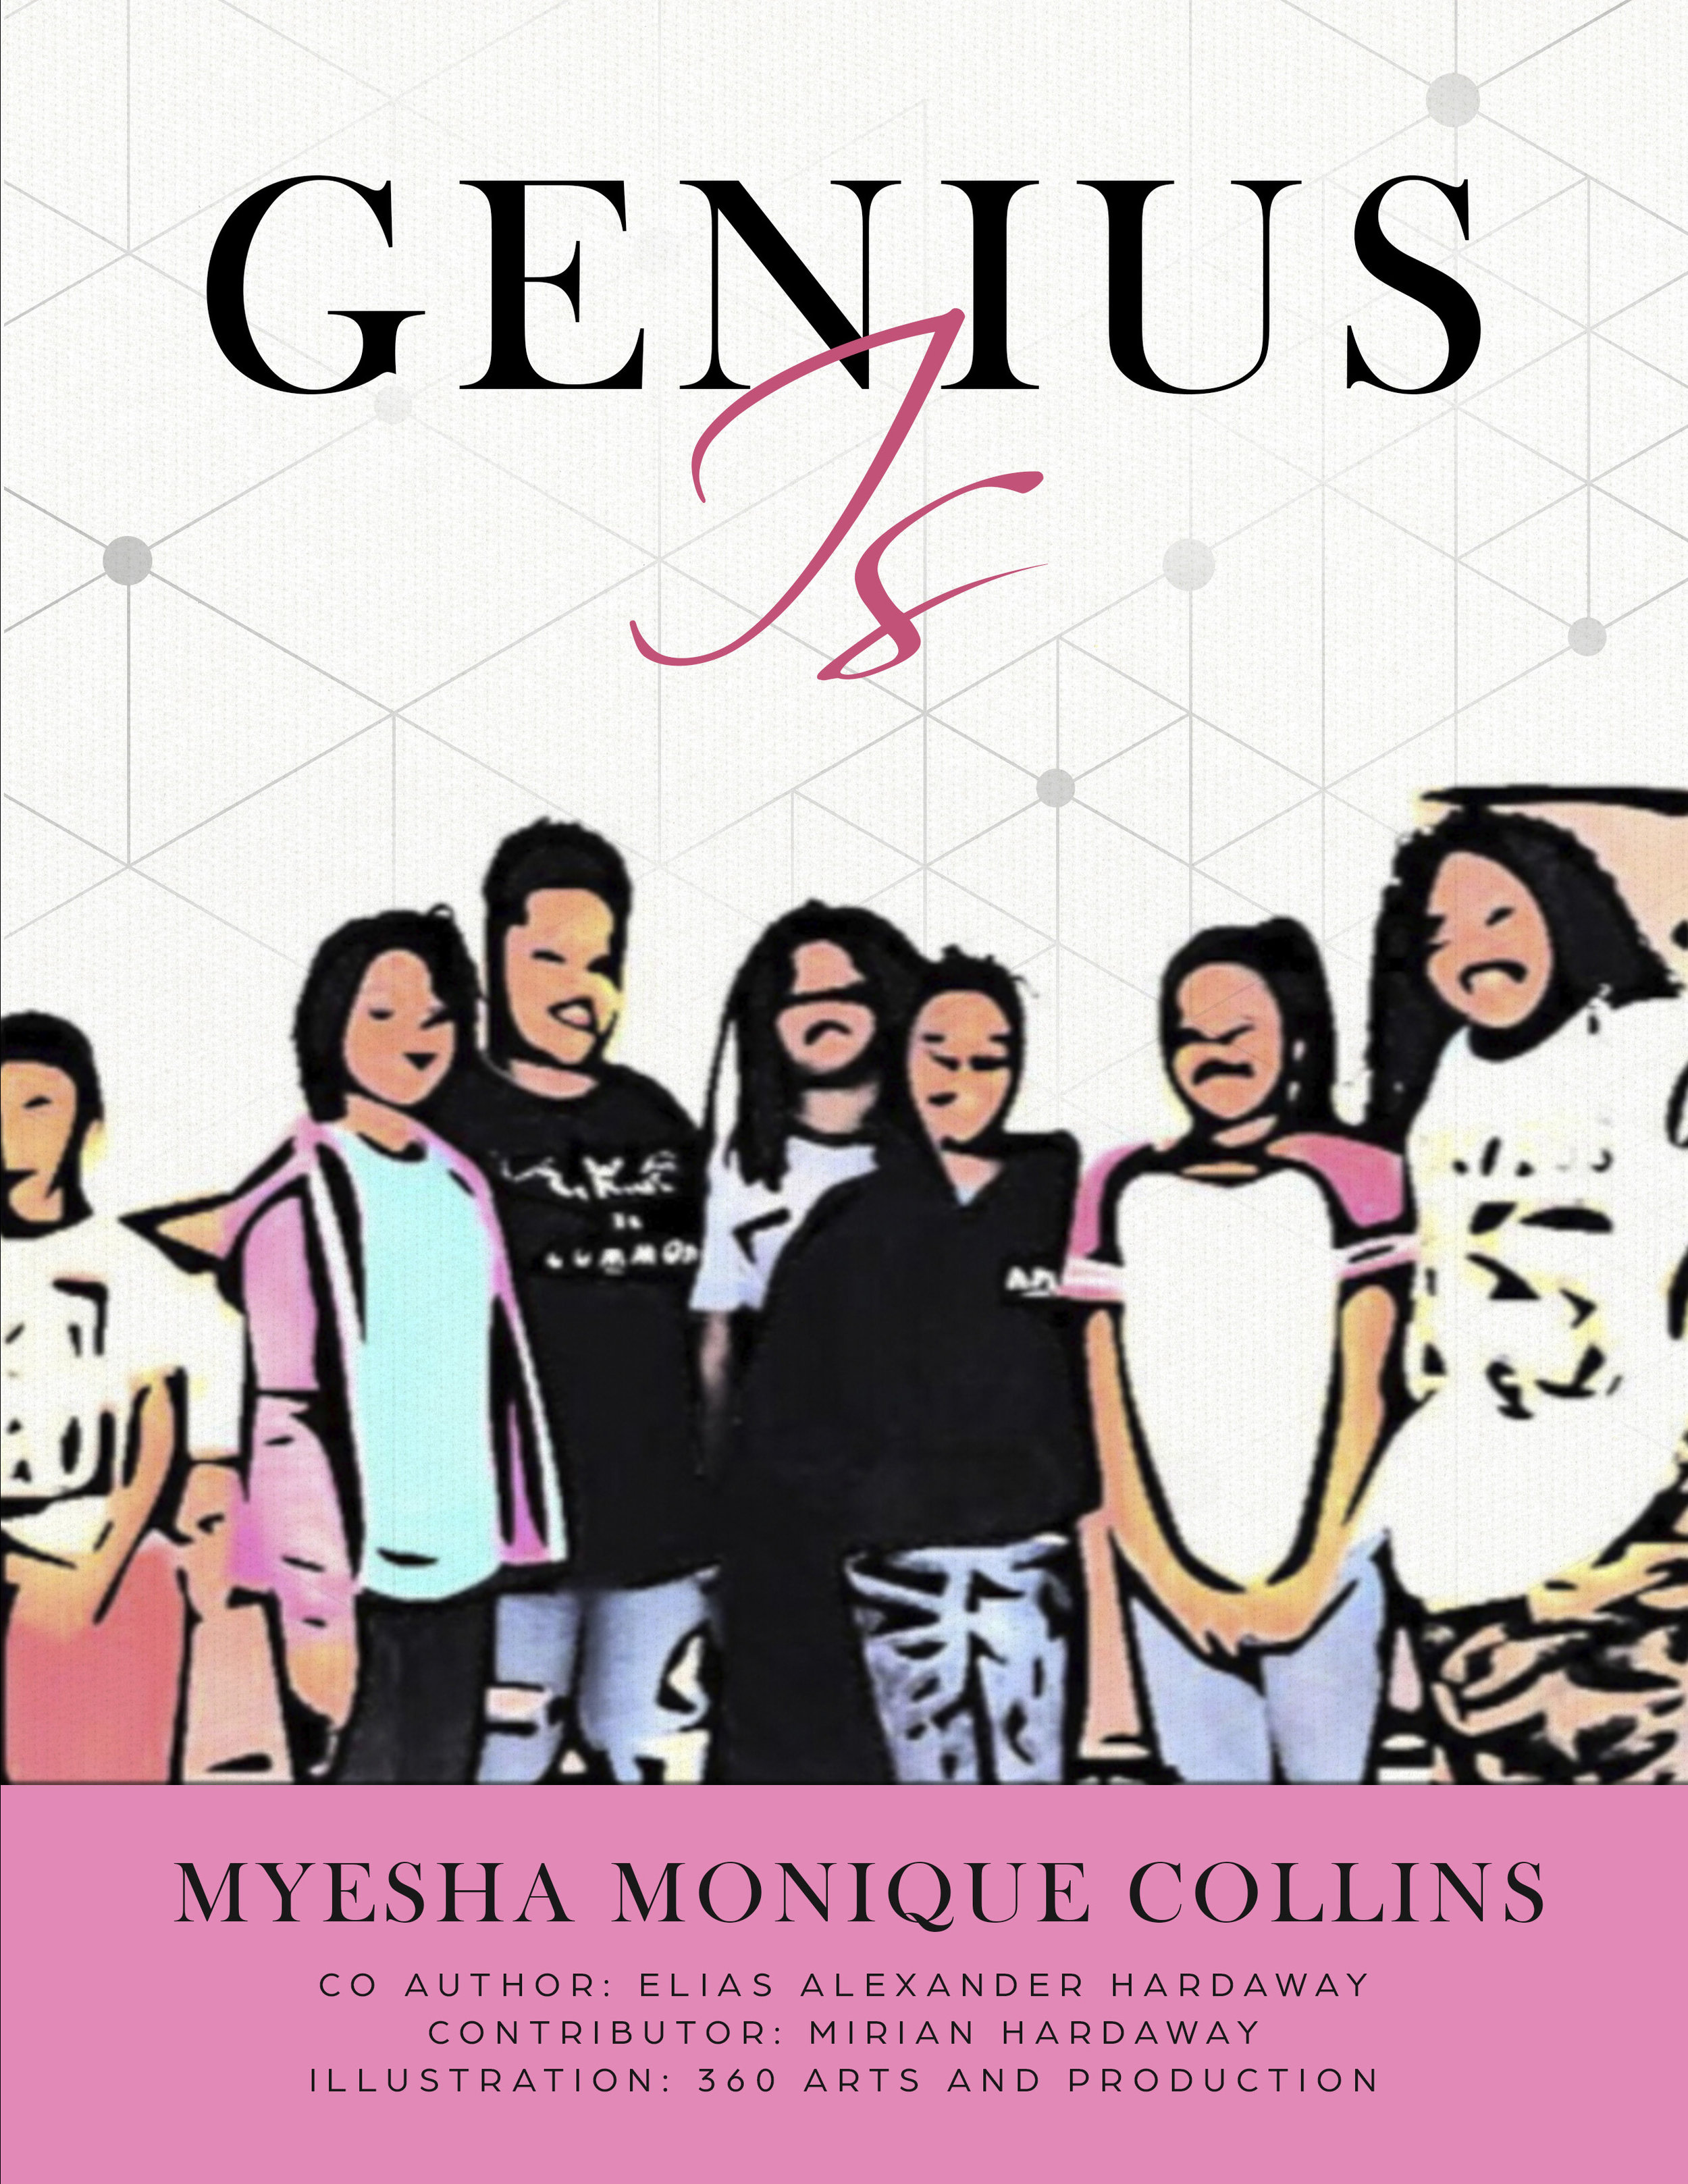 Join Us! - Genius Is introduces the mindset and concept that we all have a natural genius. Once nurtured and developed that Genius will create the ultimate life you desire. Embracing and living this mindset will always create opportunities for growth as well as the ability to find all the other greatness we have within.Educators, Leaders, Resources, Schools bring Genius Is to those you Lead!